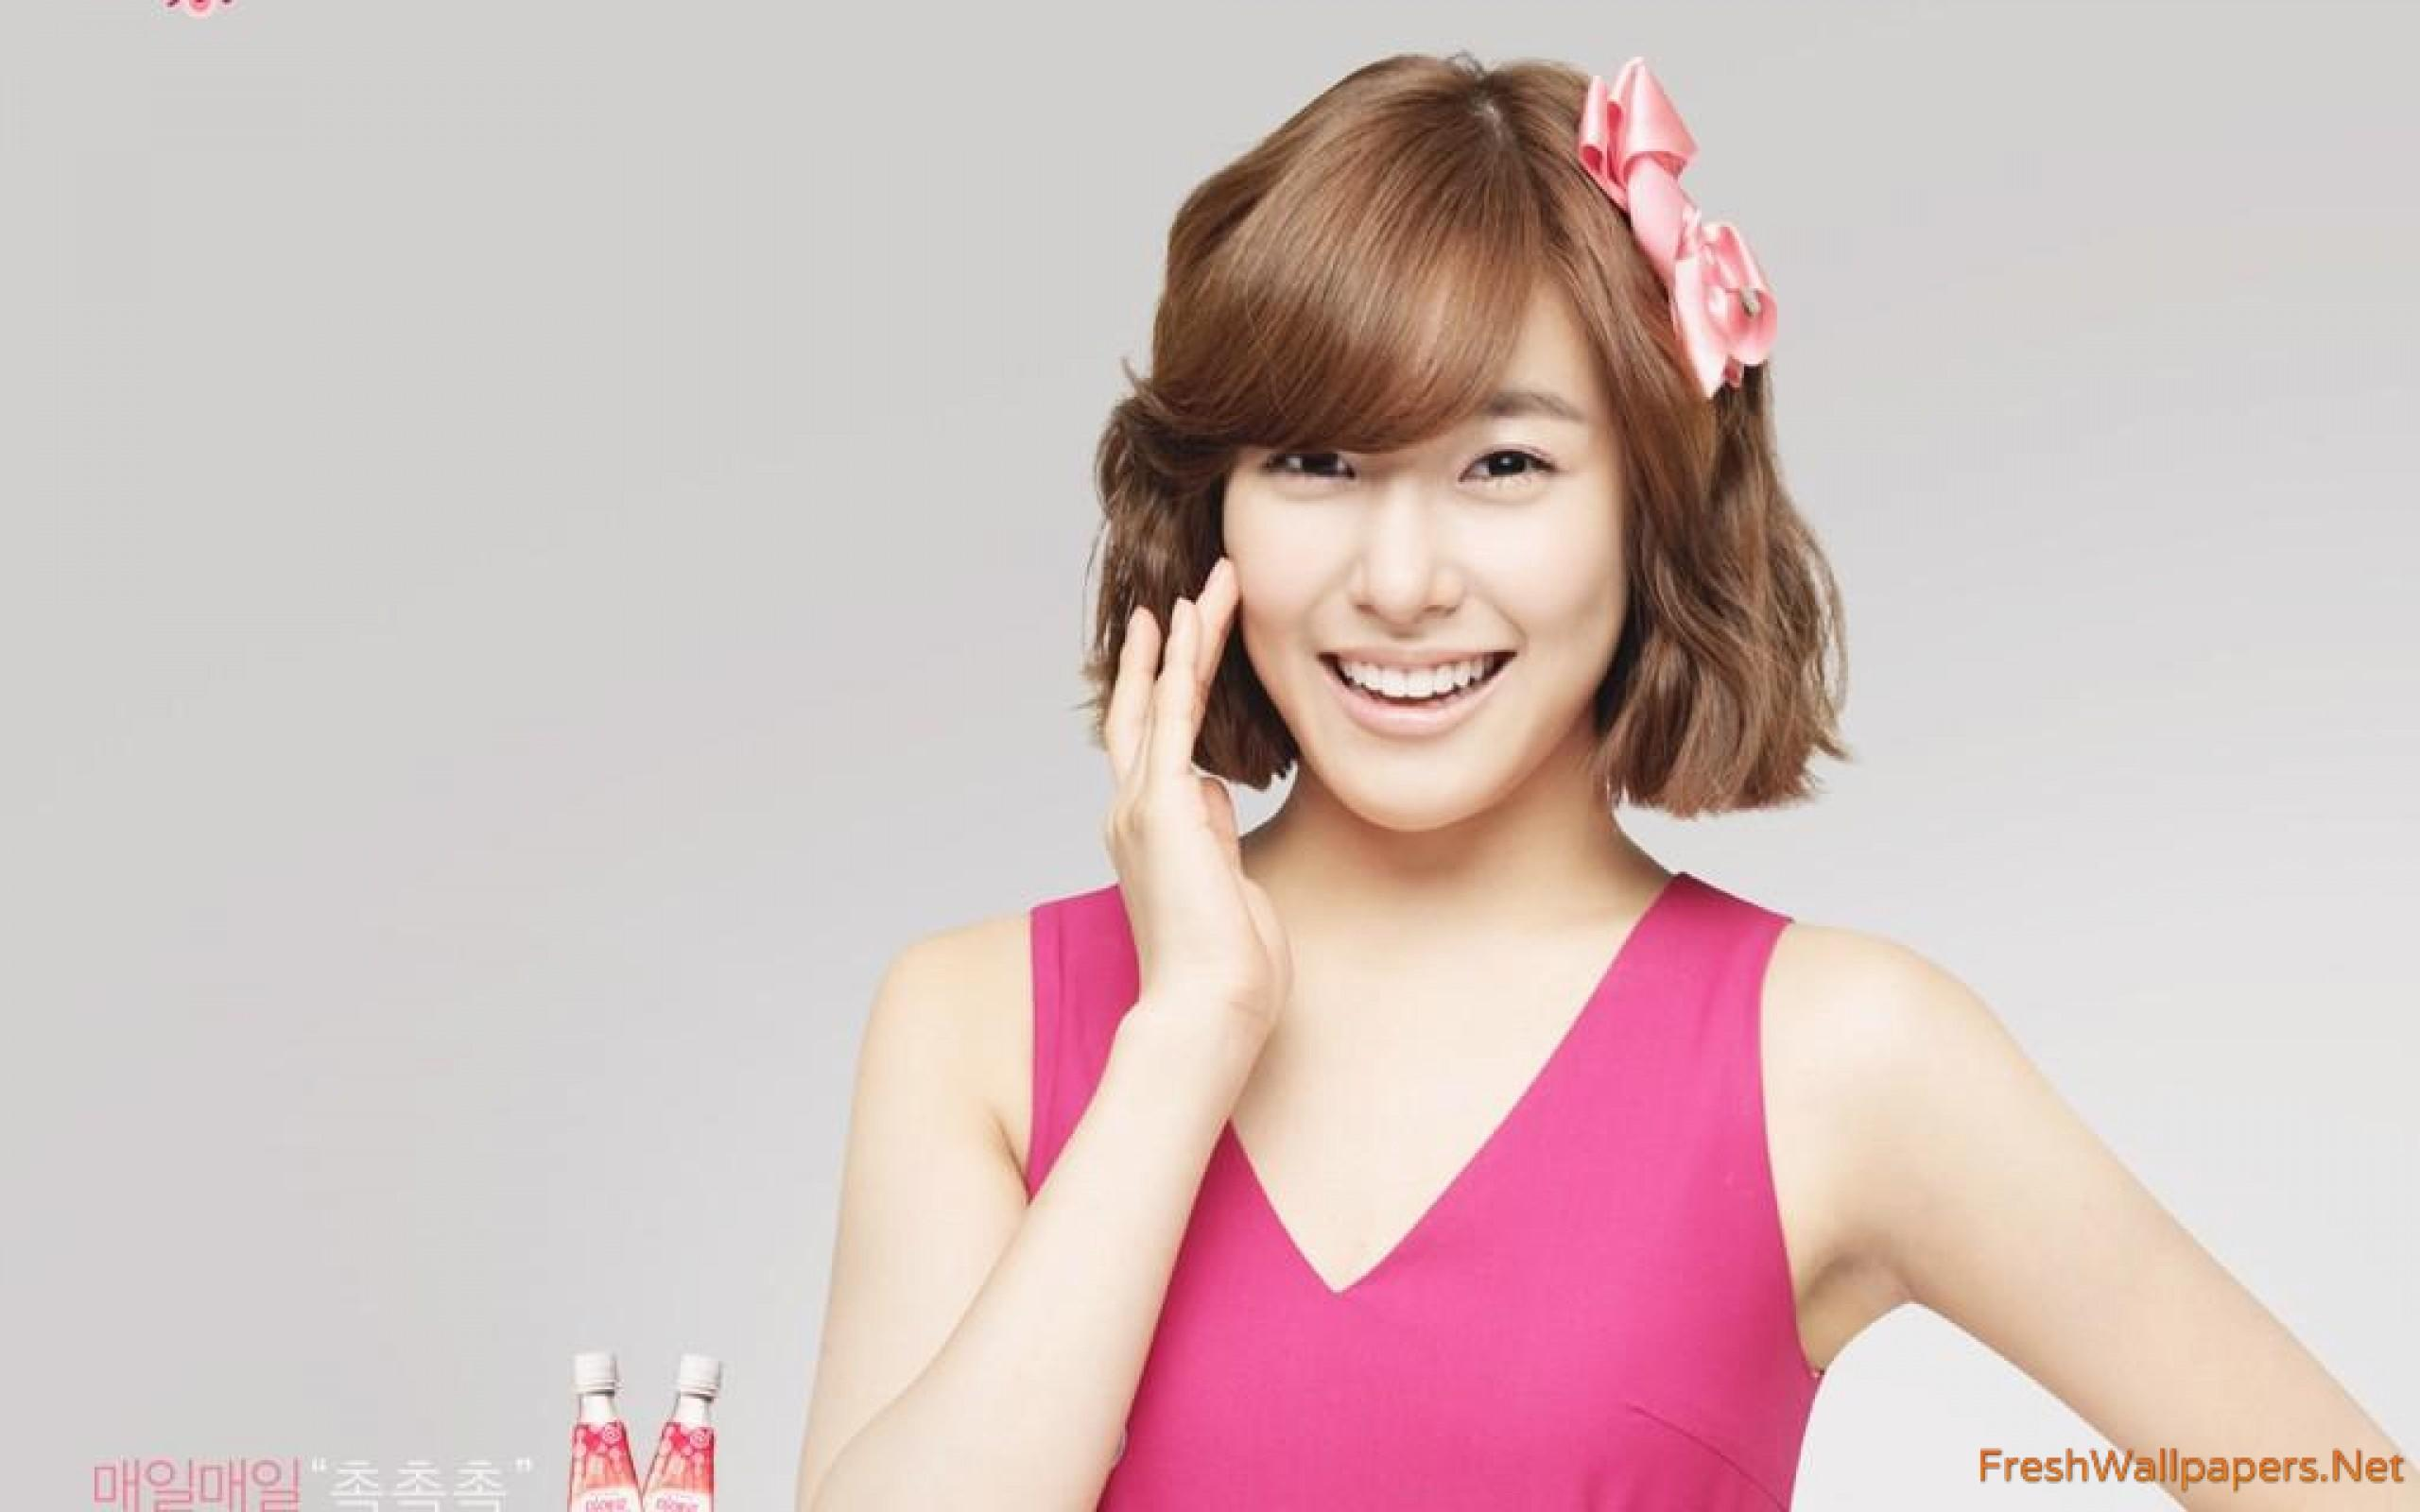 Tiffany Hwang wallpapers | Freshwallpapers